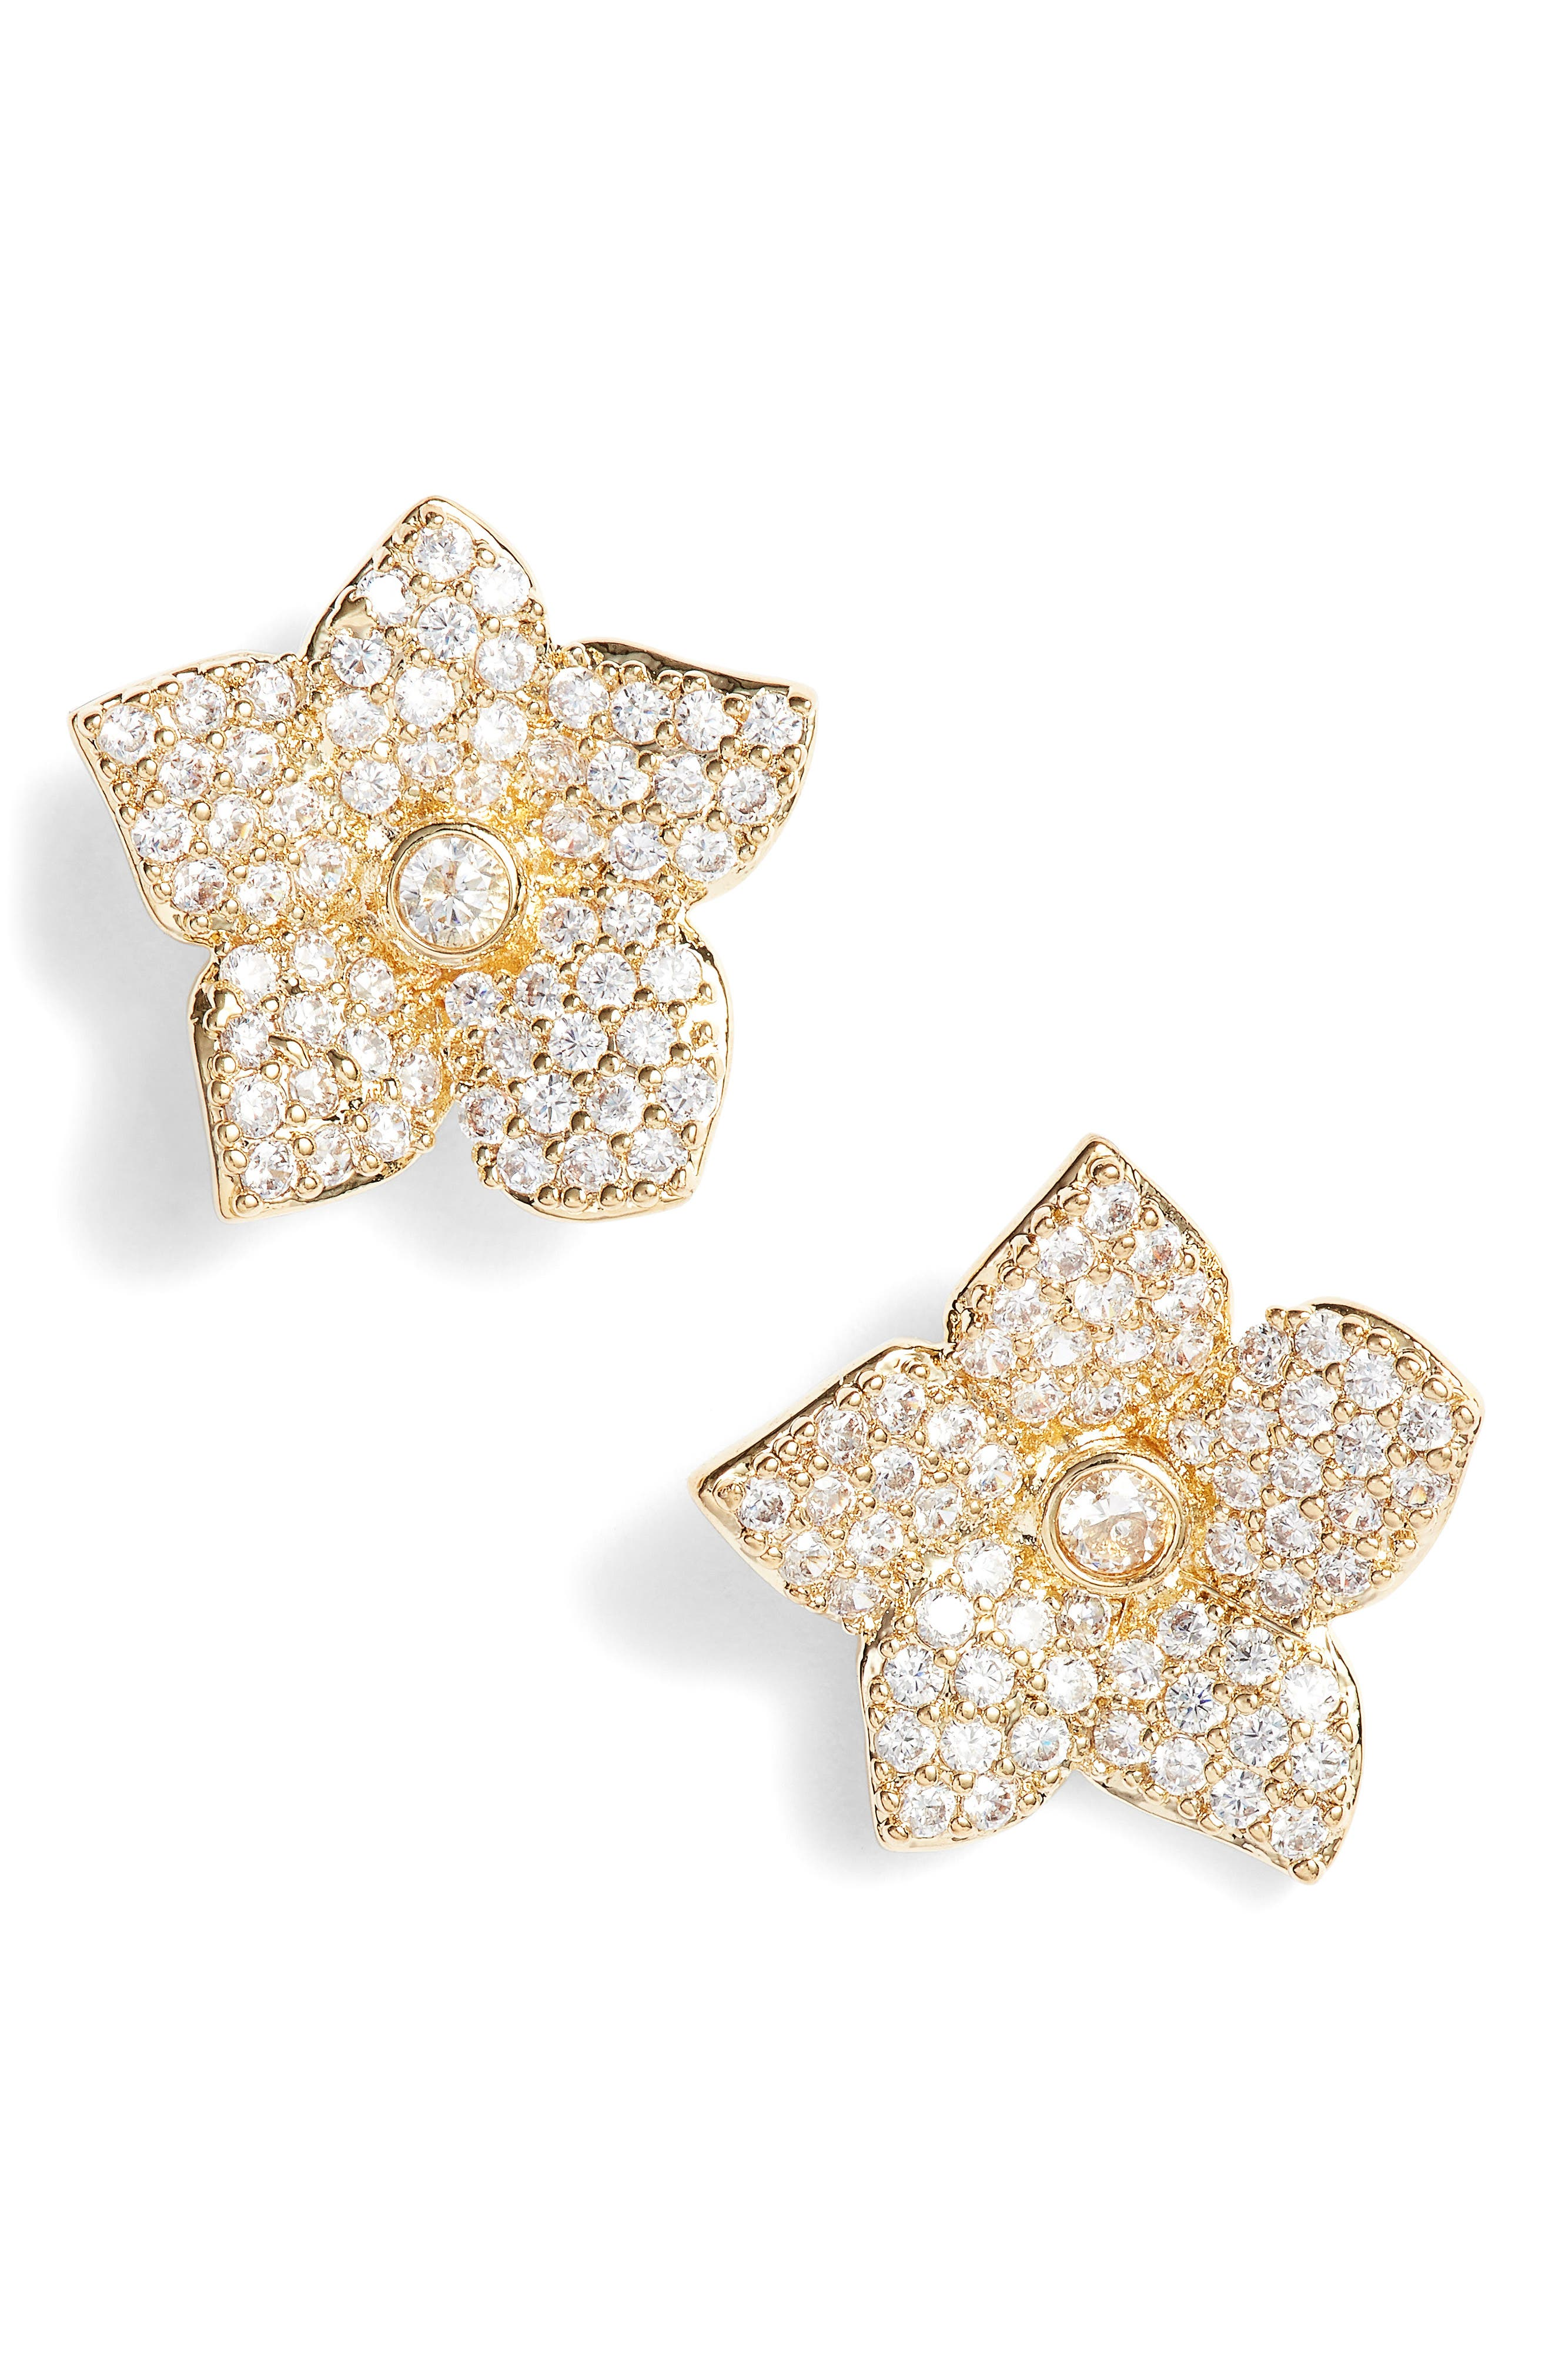 Kate Spade Blooming Pavé Stud Earrings,                         Main,                         color, Gold